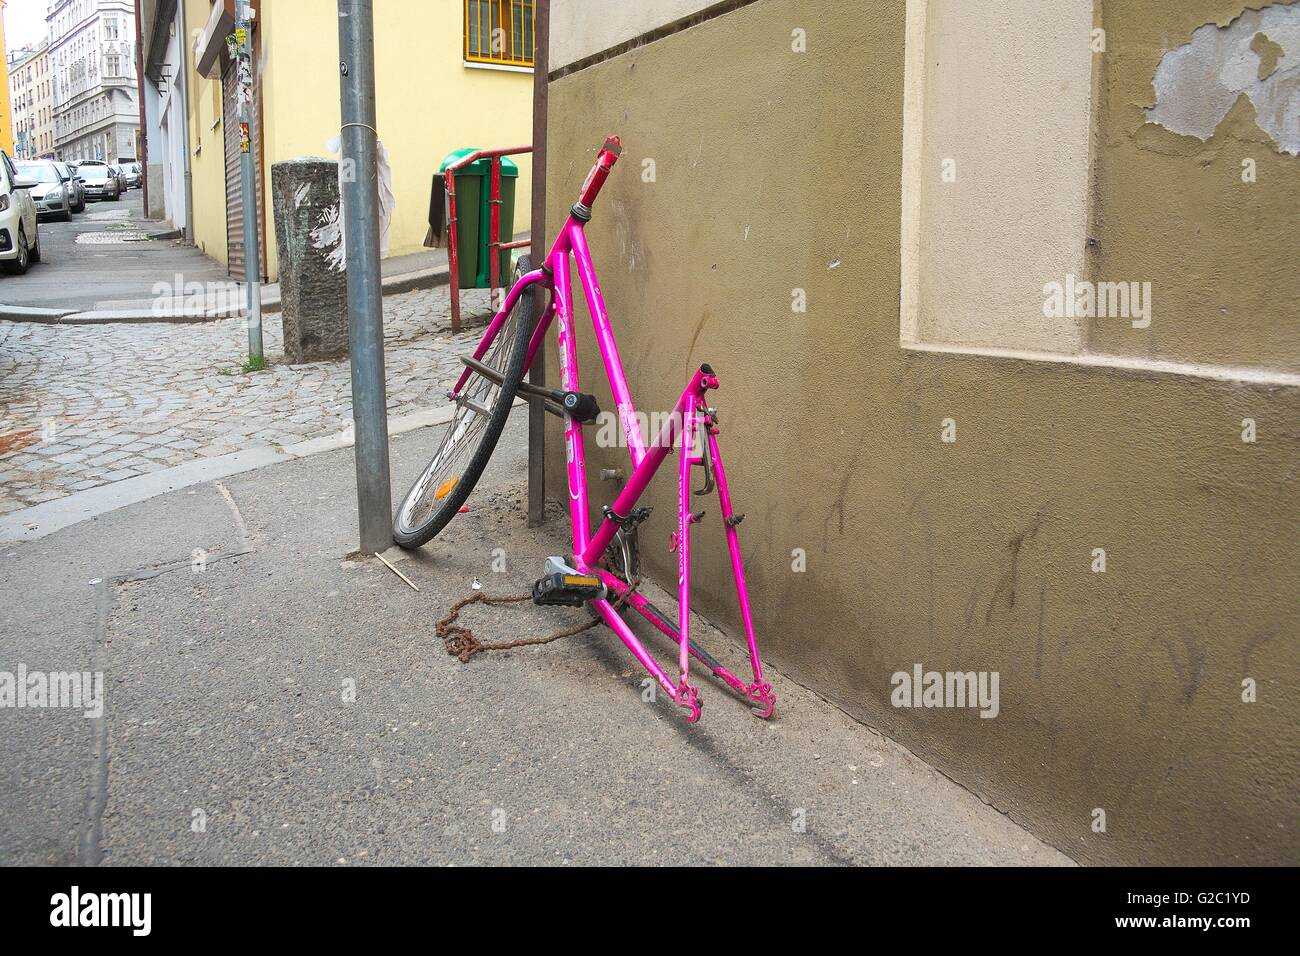 Broken and stolen beloved pink bicycle on the street. It looks like a corrupt petty street crime and violence. - Stock Image